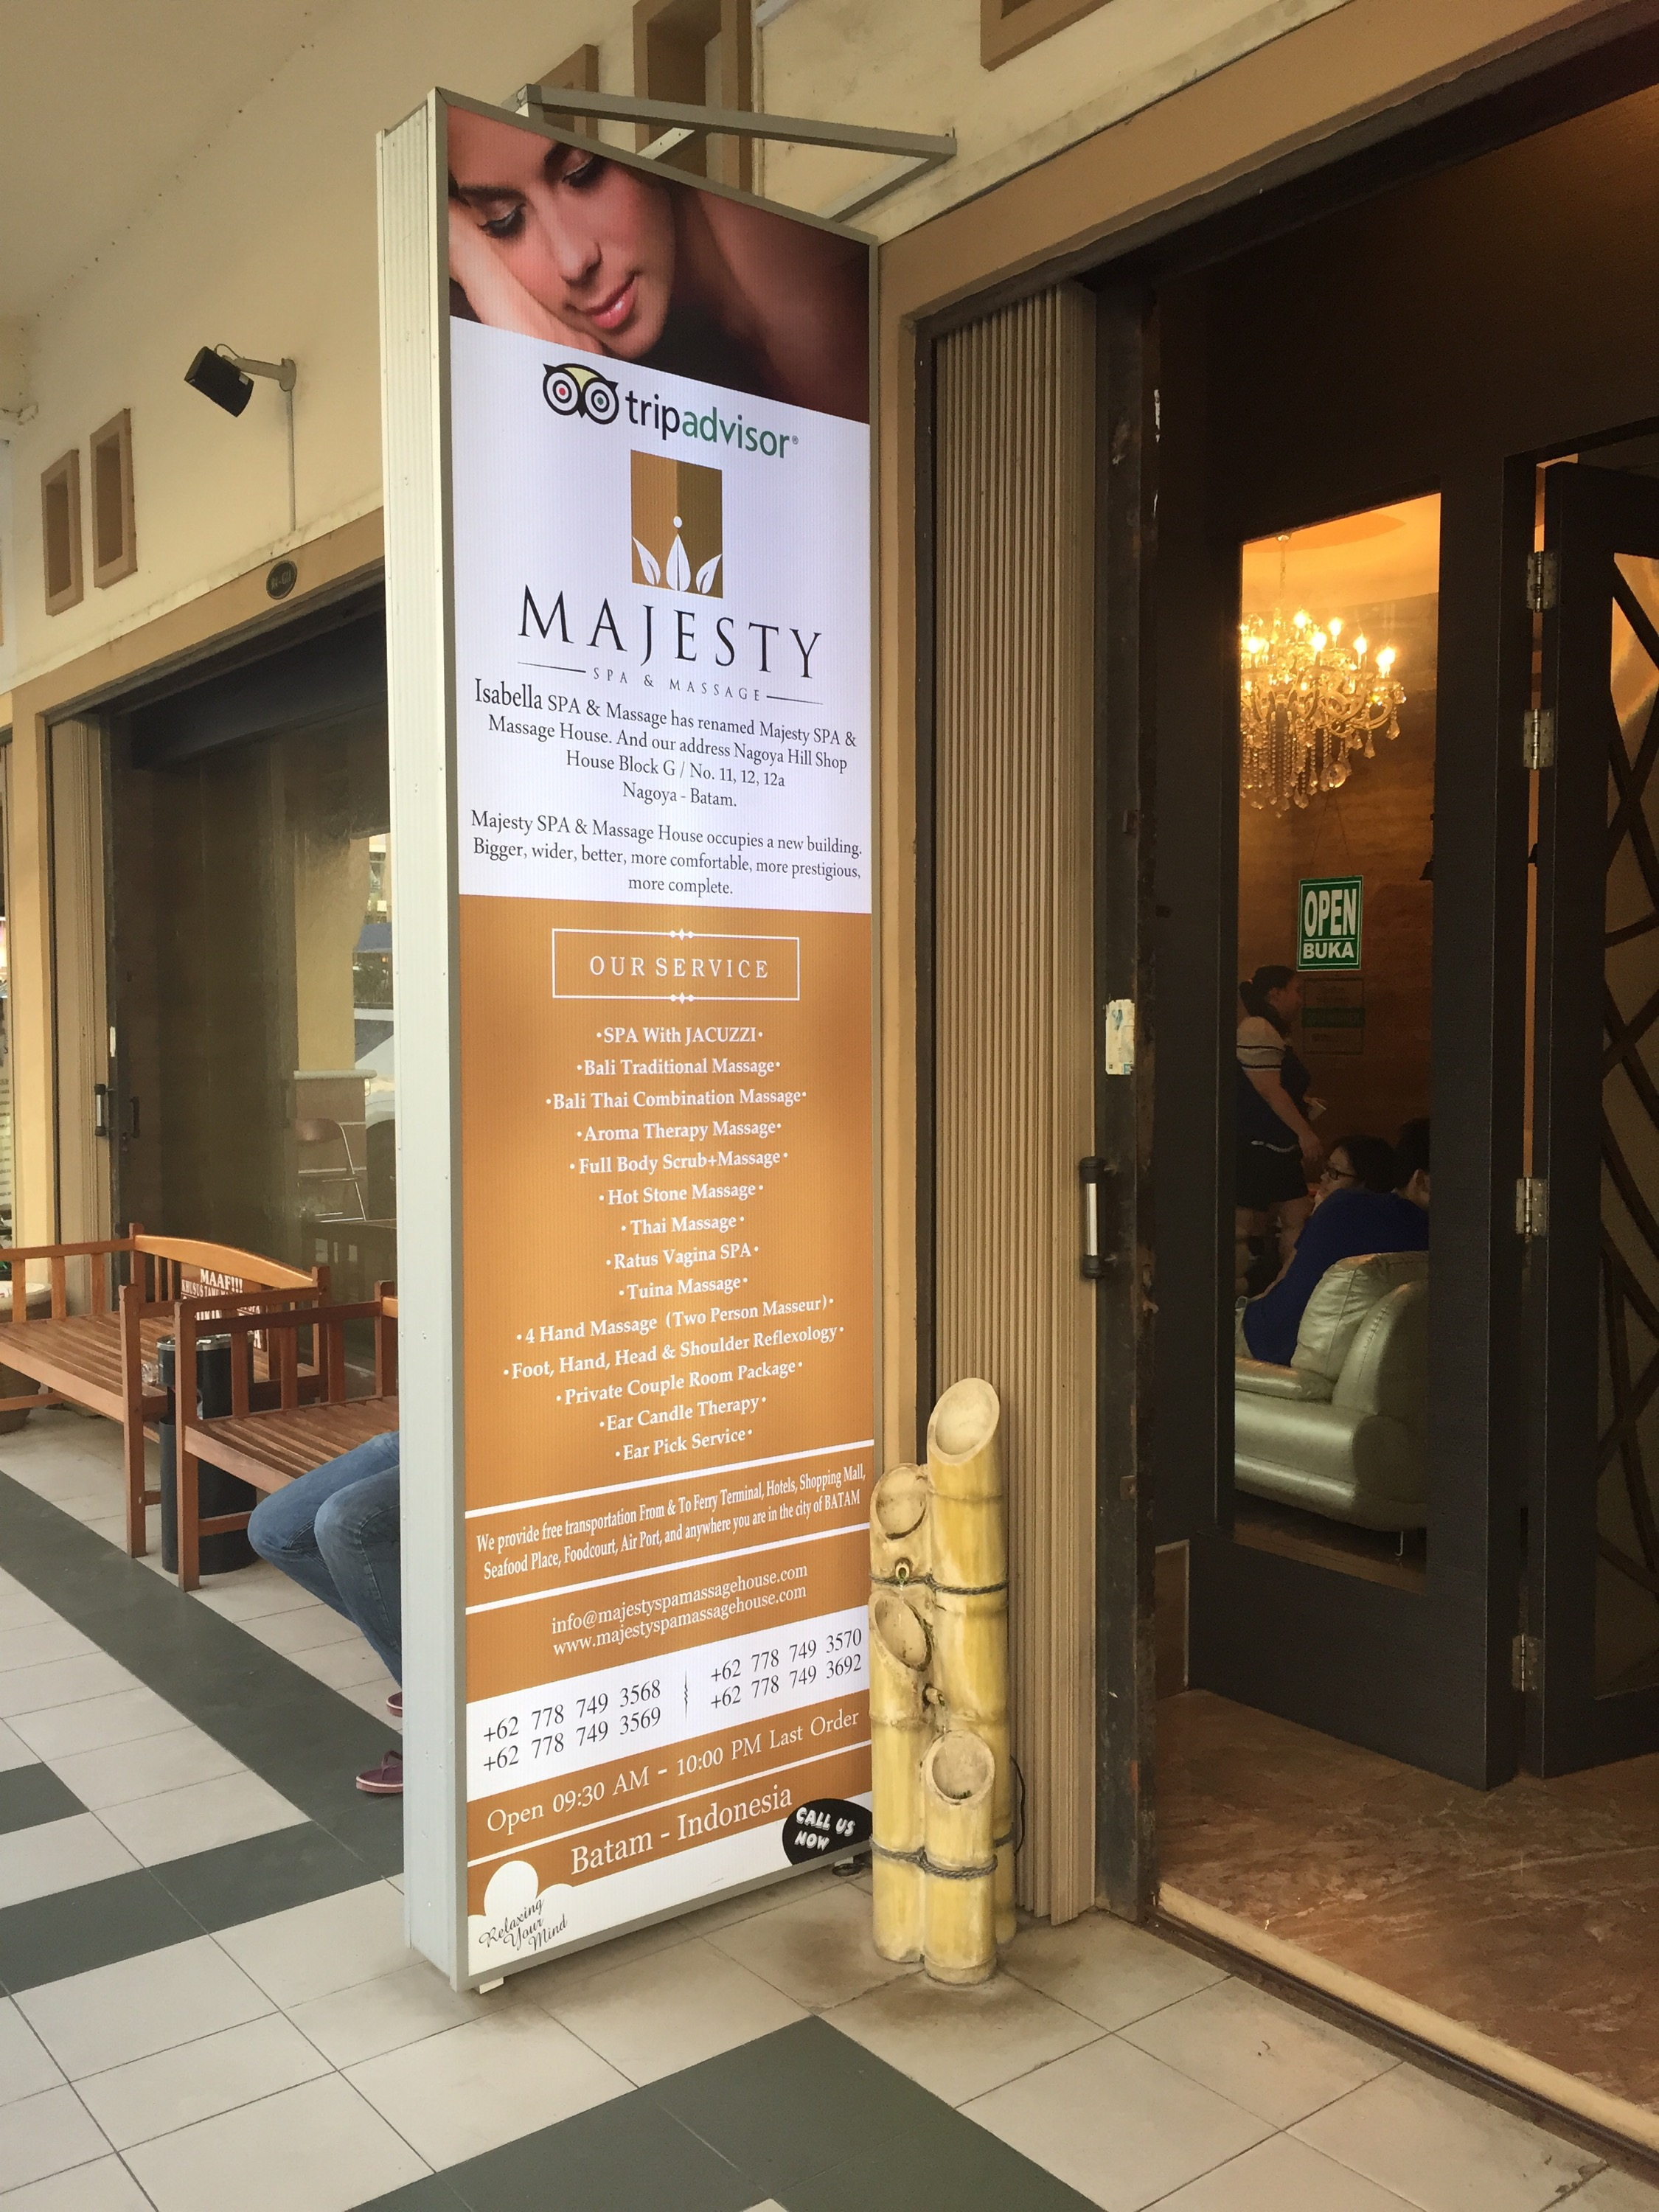 Batam Blog 2015 : Nagoya Mansion Hotel - Majesty Spa & Massage